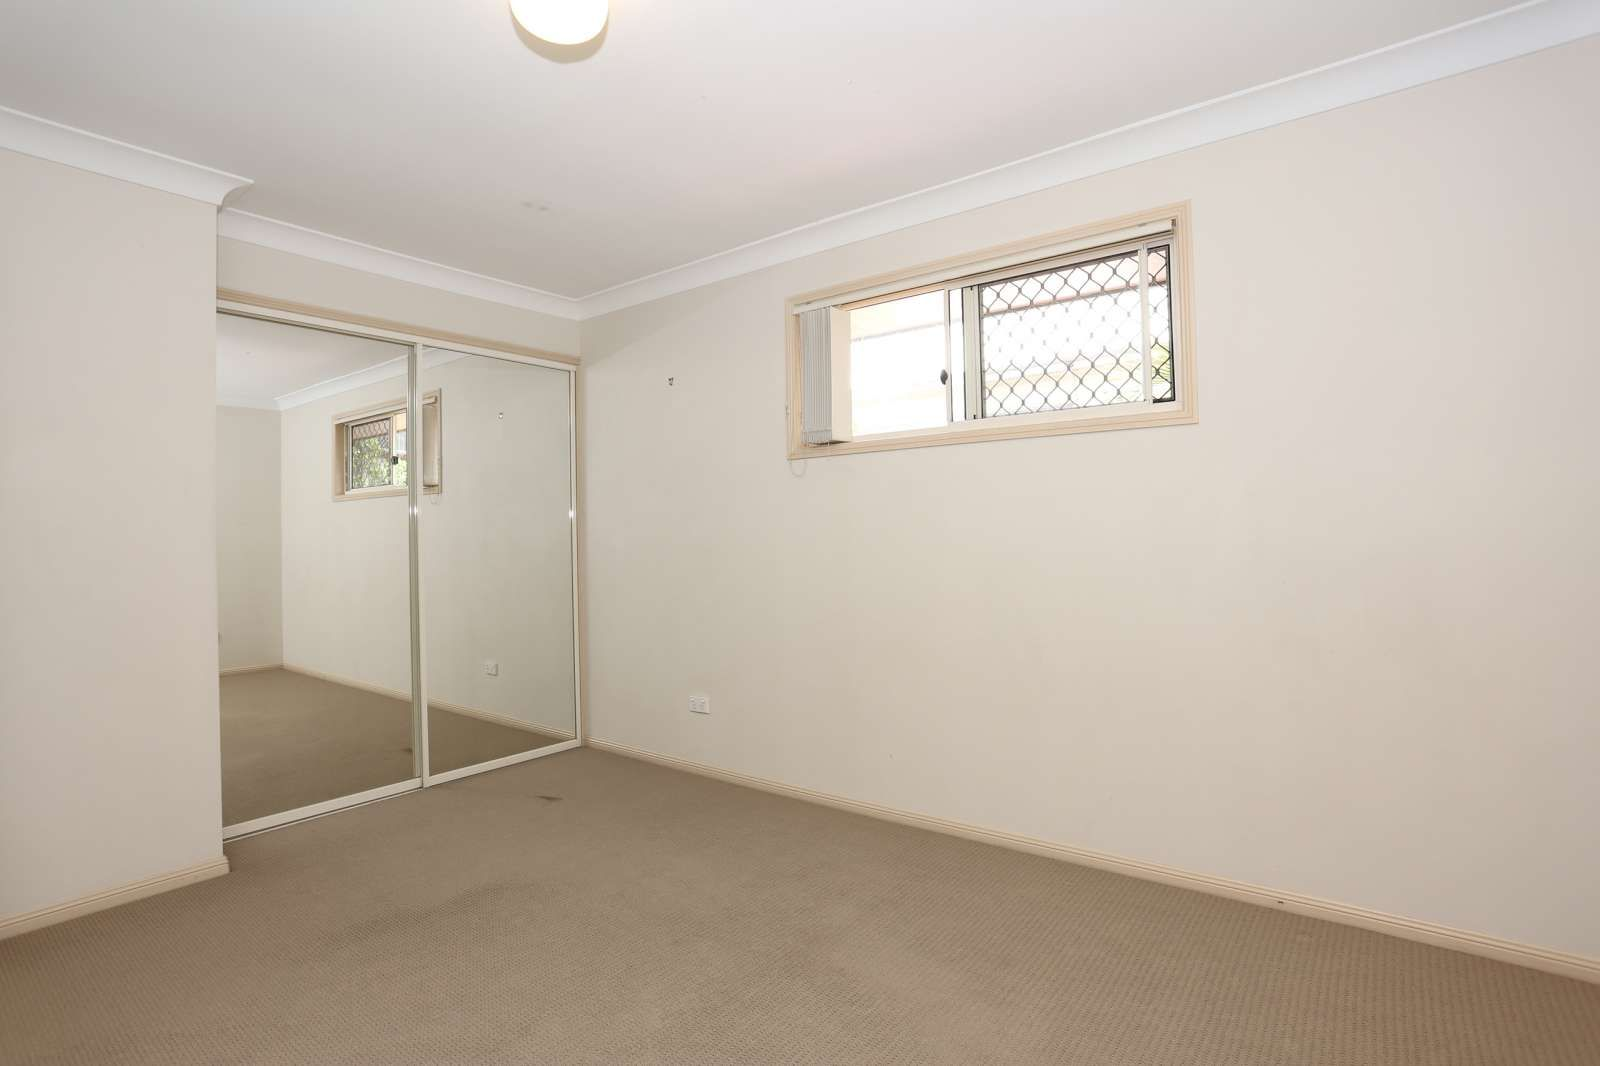 2/51 Grays Road, Gaythorne QLD 4051, Image 6